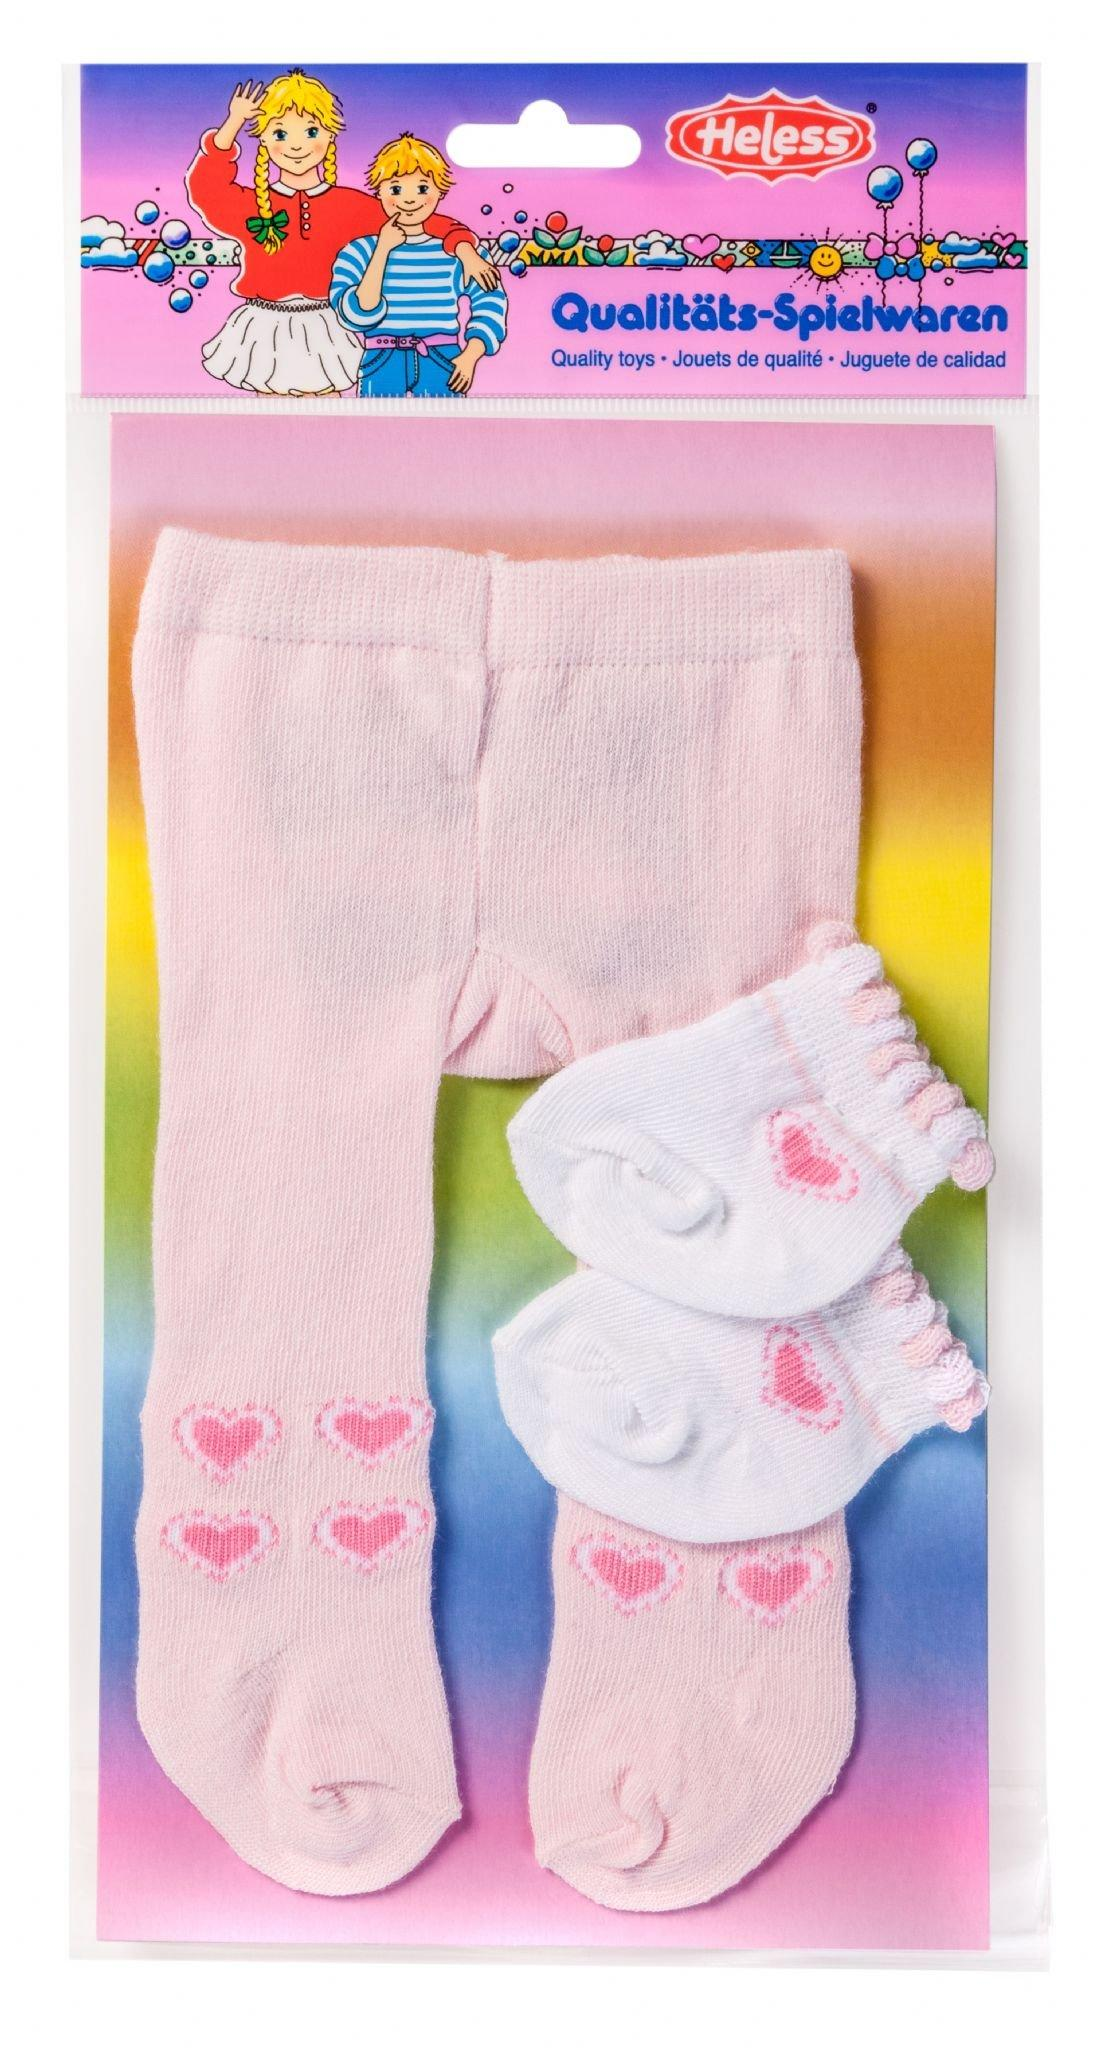 Dolls pink tights and white socks